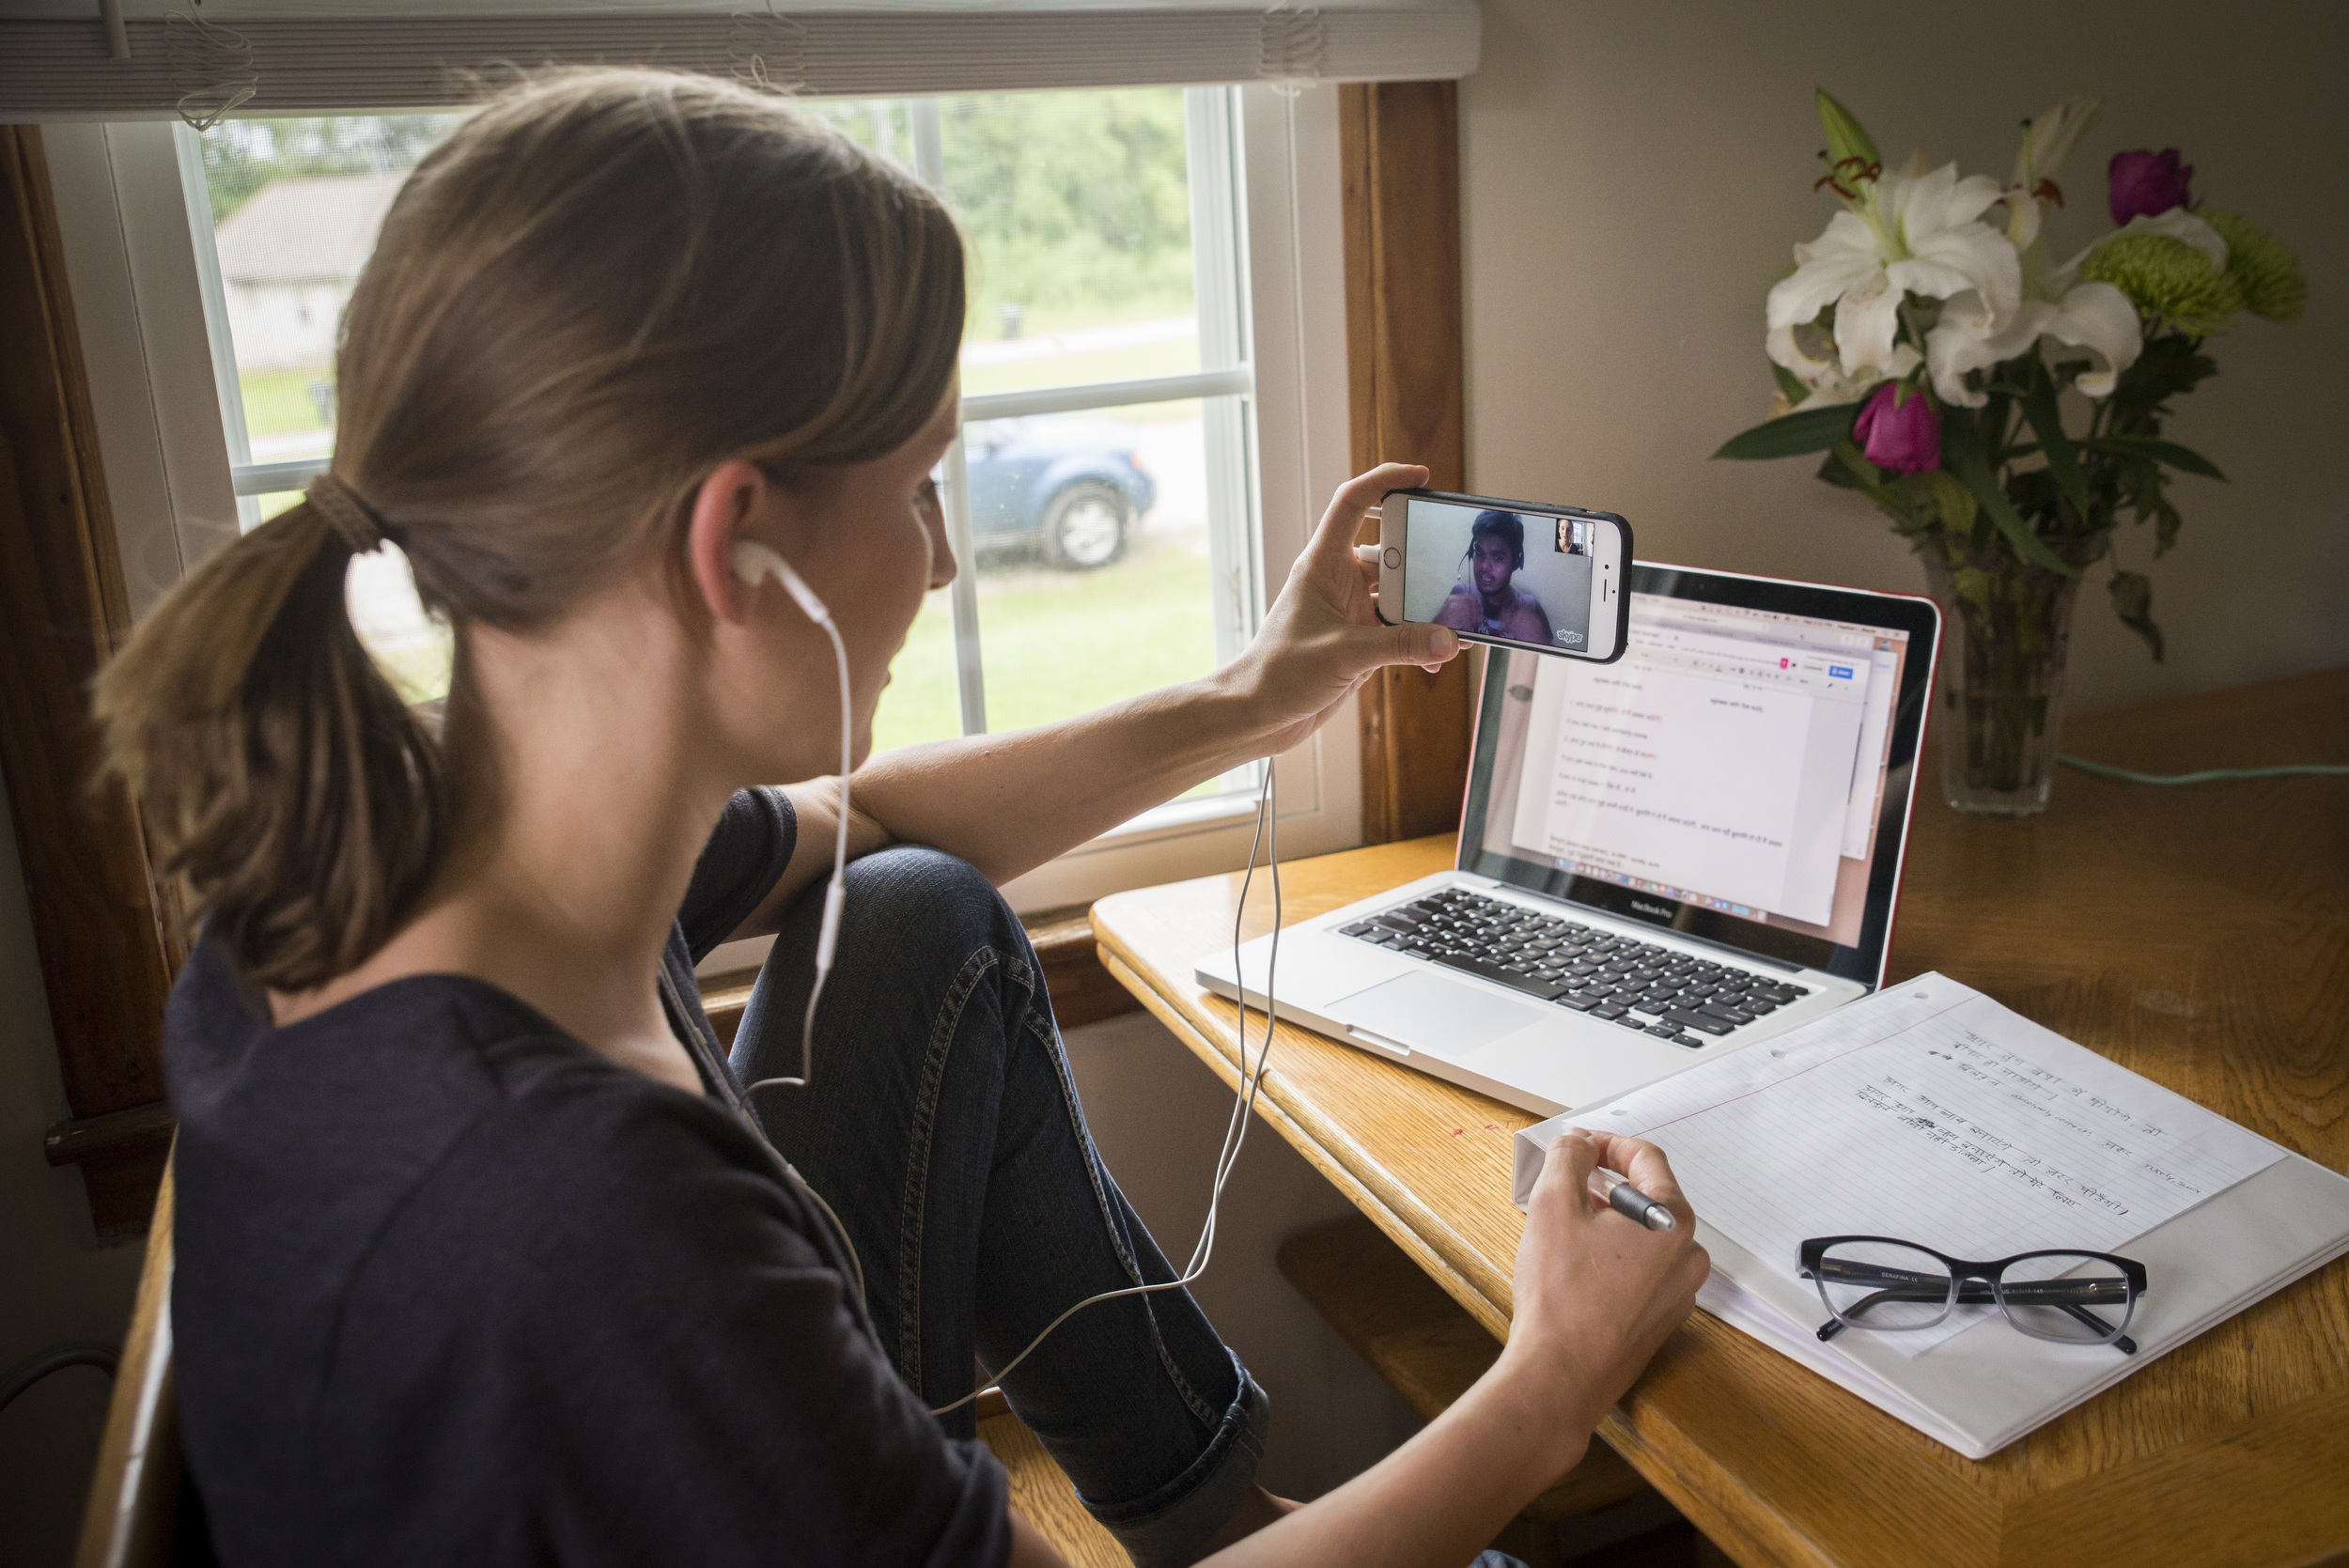 Heather Maute, Nashville,takes interactive Hindi lessons with professional tutor Anil Mahato, in Delhi, India, through Skype. Their focus is on conversational Hindi and lessons are customized based on each student.